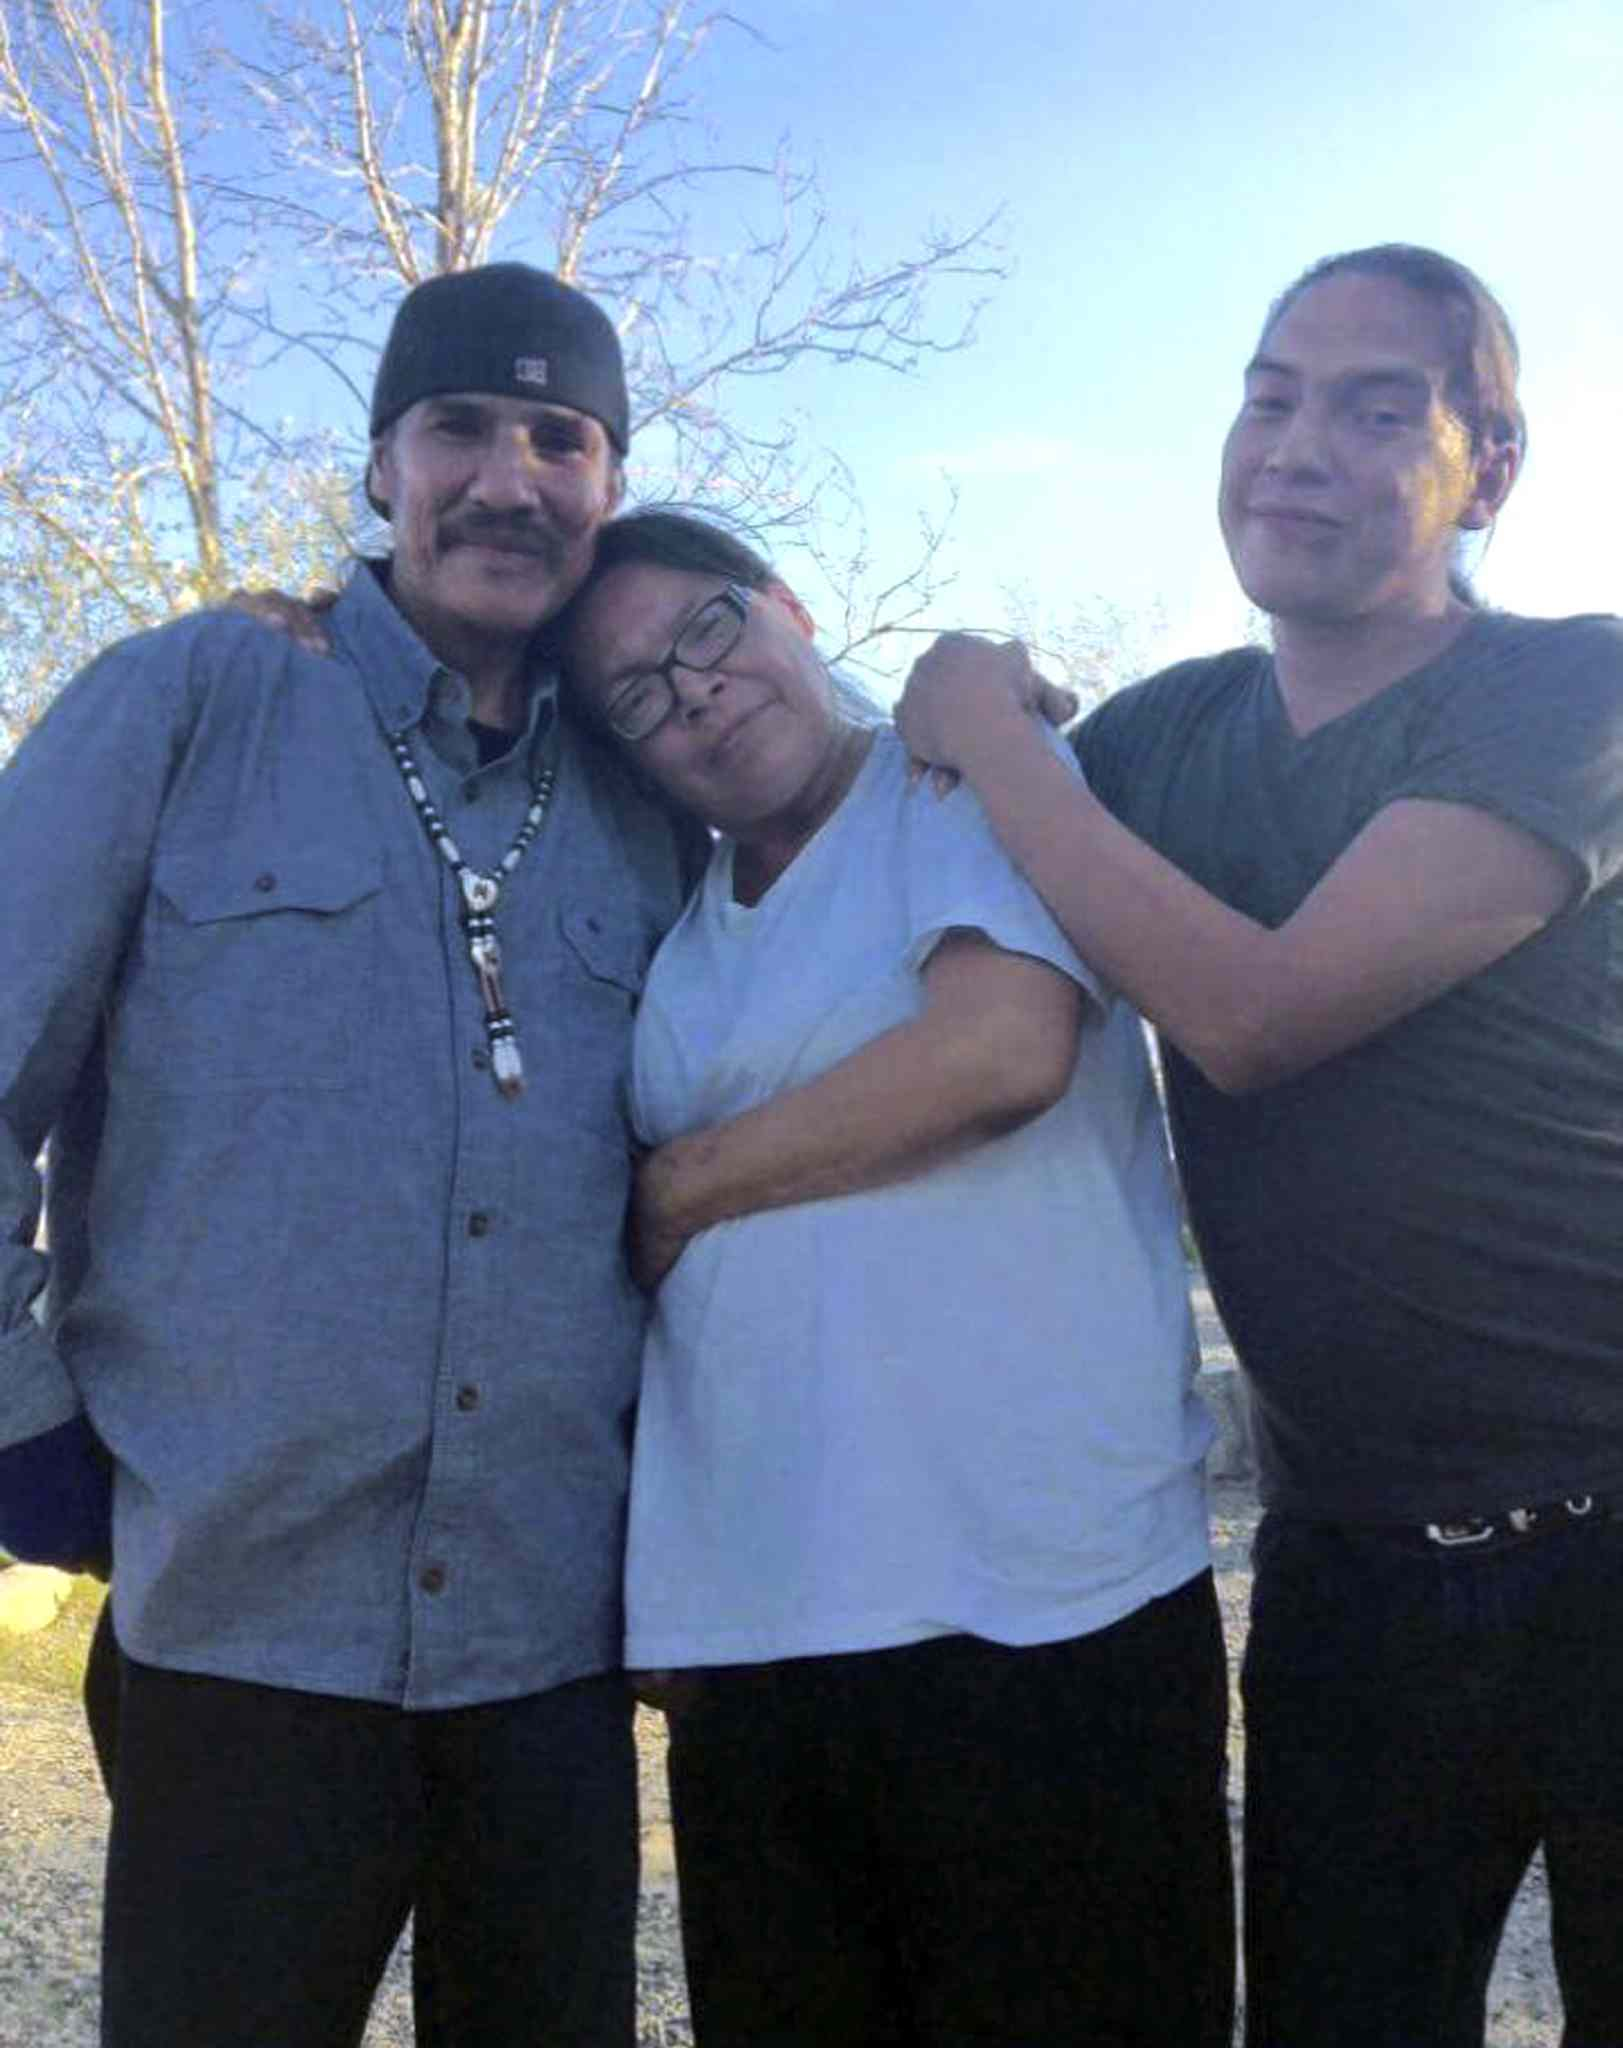 The bodies of three adults were discovered in the rubble of a home destroyed by fire early Tuesday morning (December 29, 2015) at Bunibonibee Cree Nation in northern Manitoba. In photo are victim James Crane, Sandra Crane (James' wife who was not home at the time) and victim Jamie Crane (Son of James and Sandra). Also dead is Jastidee Sinclair (not in photo).